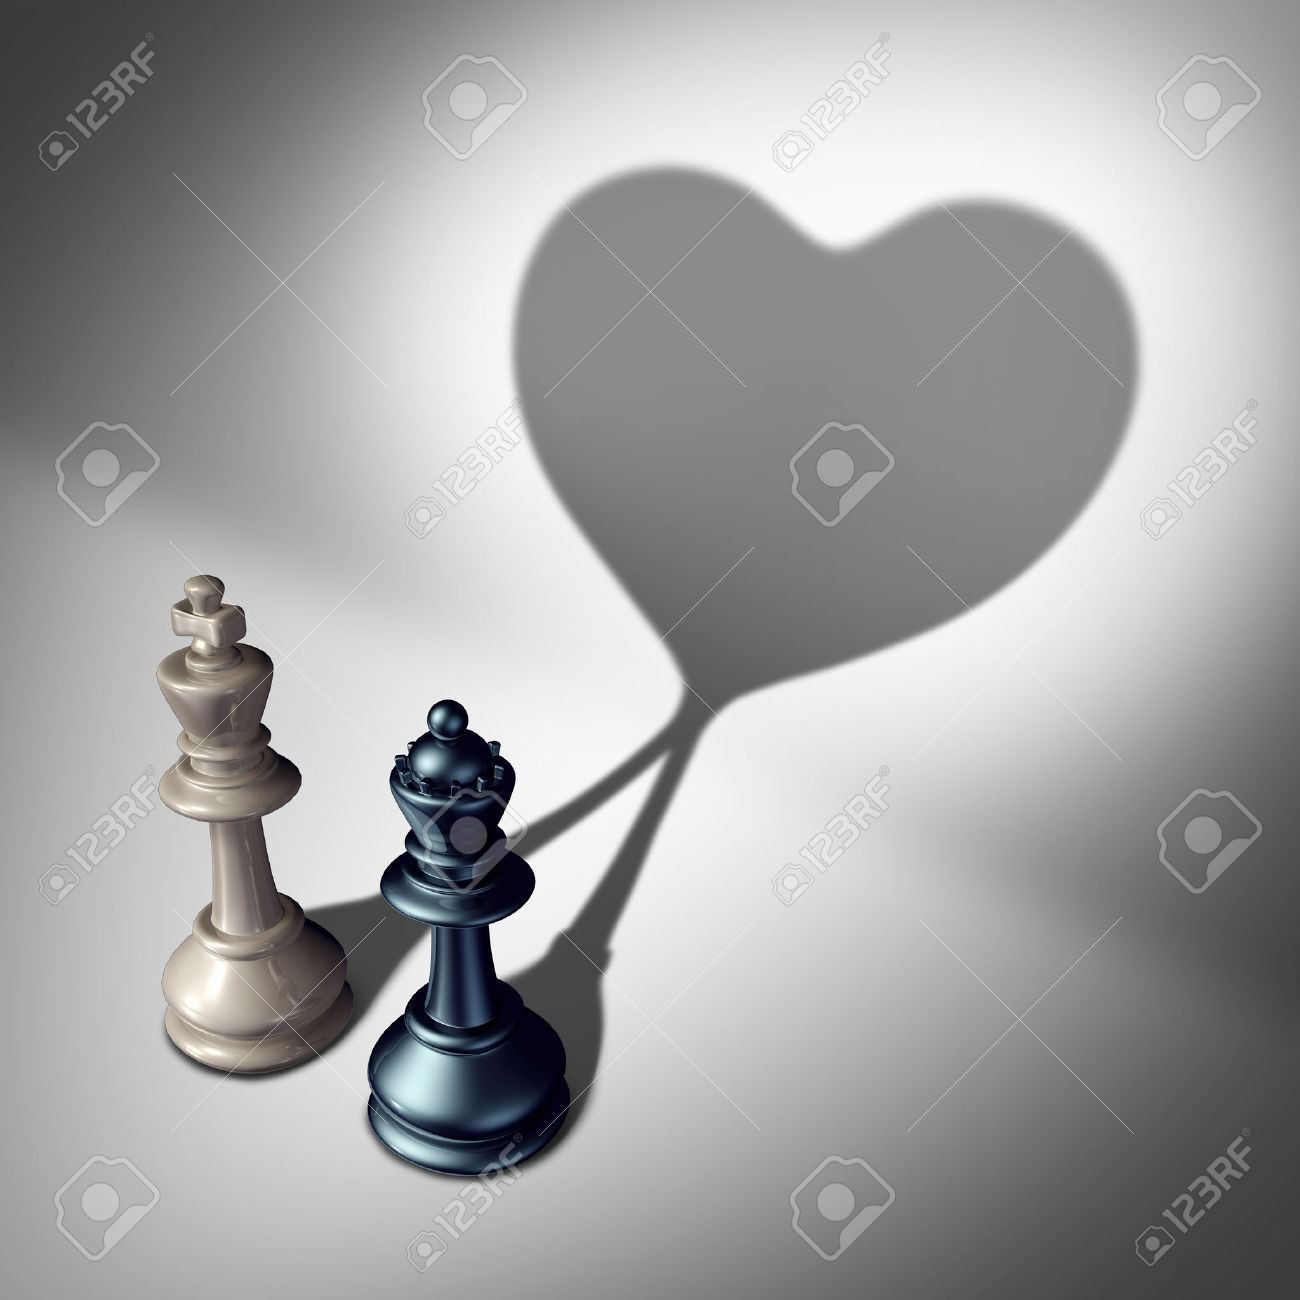 Couple in love as a valentines day concept as a white king and black queen chess piece casting a united cast shadow coming together in a romantic